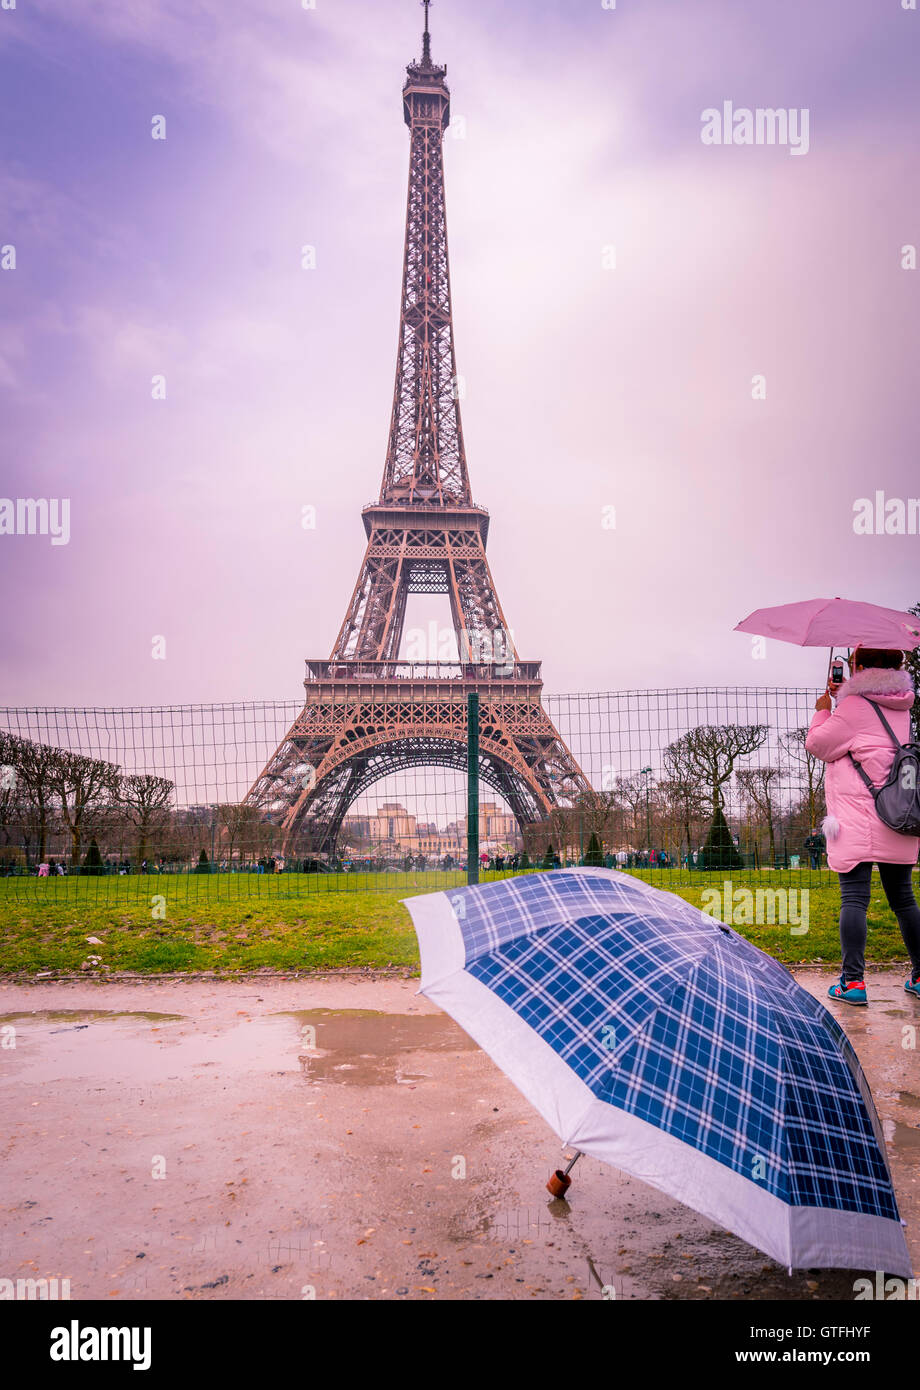 Rainy day in Paris at Eiffel tower - Stock Image